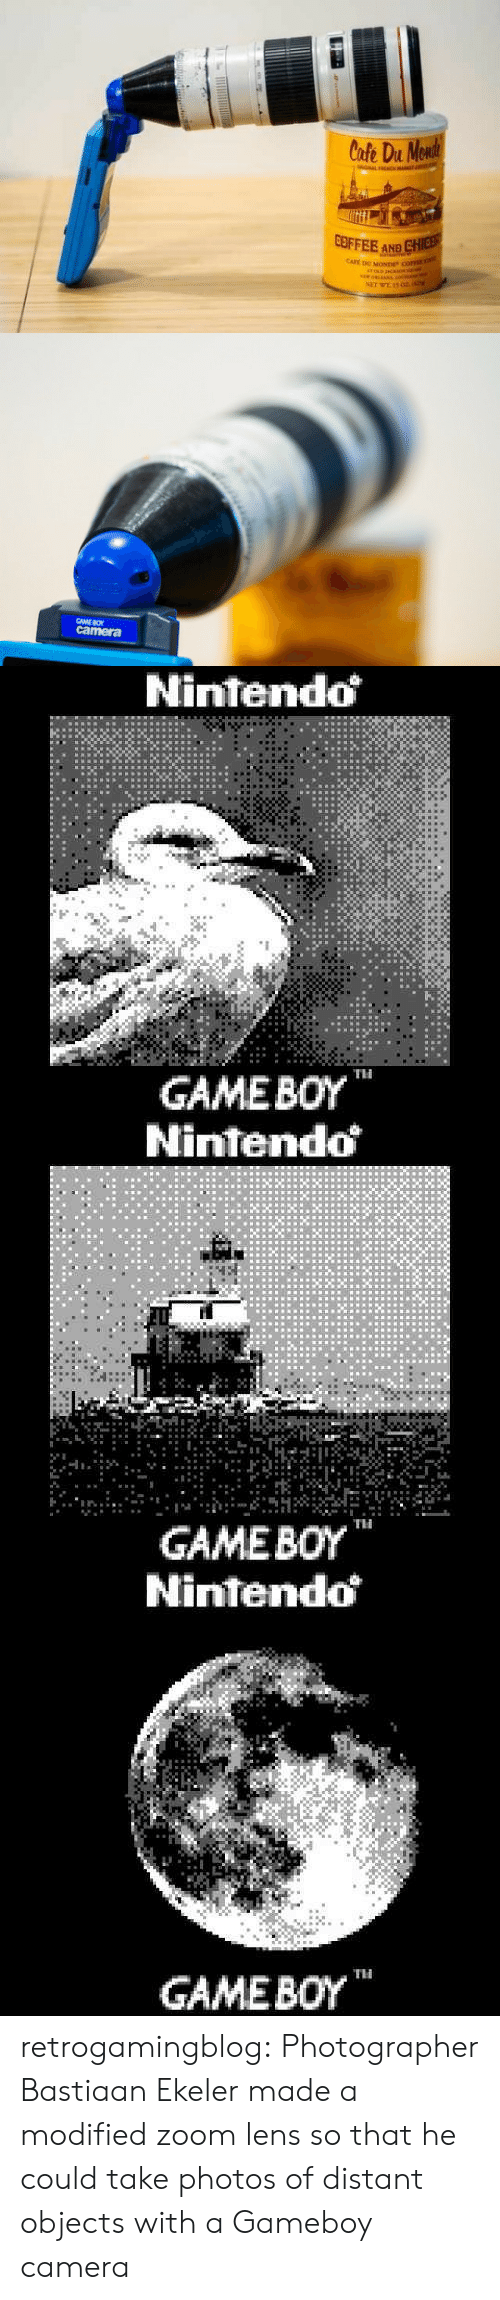 """Nintendo, Tumblr, and Zoom: Cofe Du Monde  GAL FH  COFFEE AND CHIEB  CAFE DU MONDE"""" COFEE  ATOLD JHCEo  sew 0LAANS Ioin  NET WE 15 02z.i   GAME BO  camera   Nintendo  GAMEBOY  TH   Nintendo  GAMEBOY  Ti   Nintendo  GAME BOY retrogamingblog:   Photographer Bastiaan Ekeler made a modified zoom lens so that he could take photos of distant objects with a Gameboy camera"""